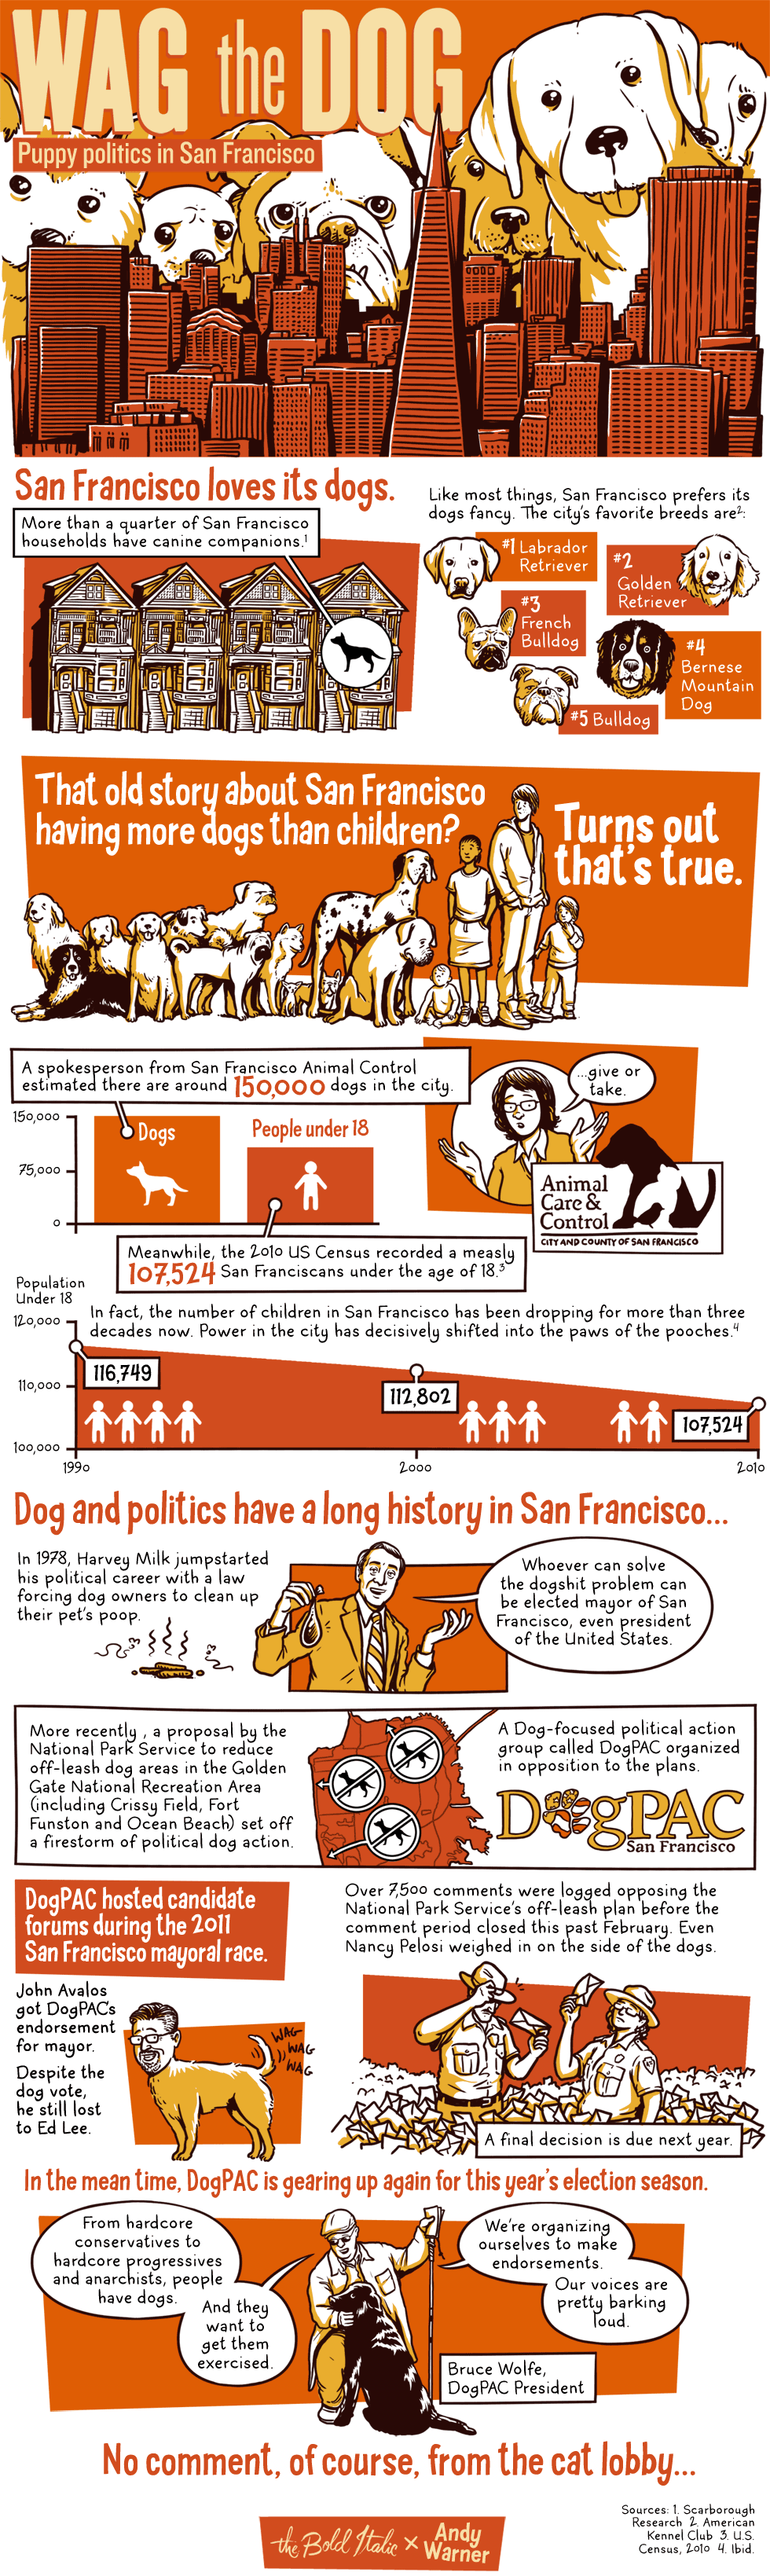 San Francisco Dogs By the Numbers — The Bold Italic — San